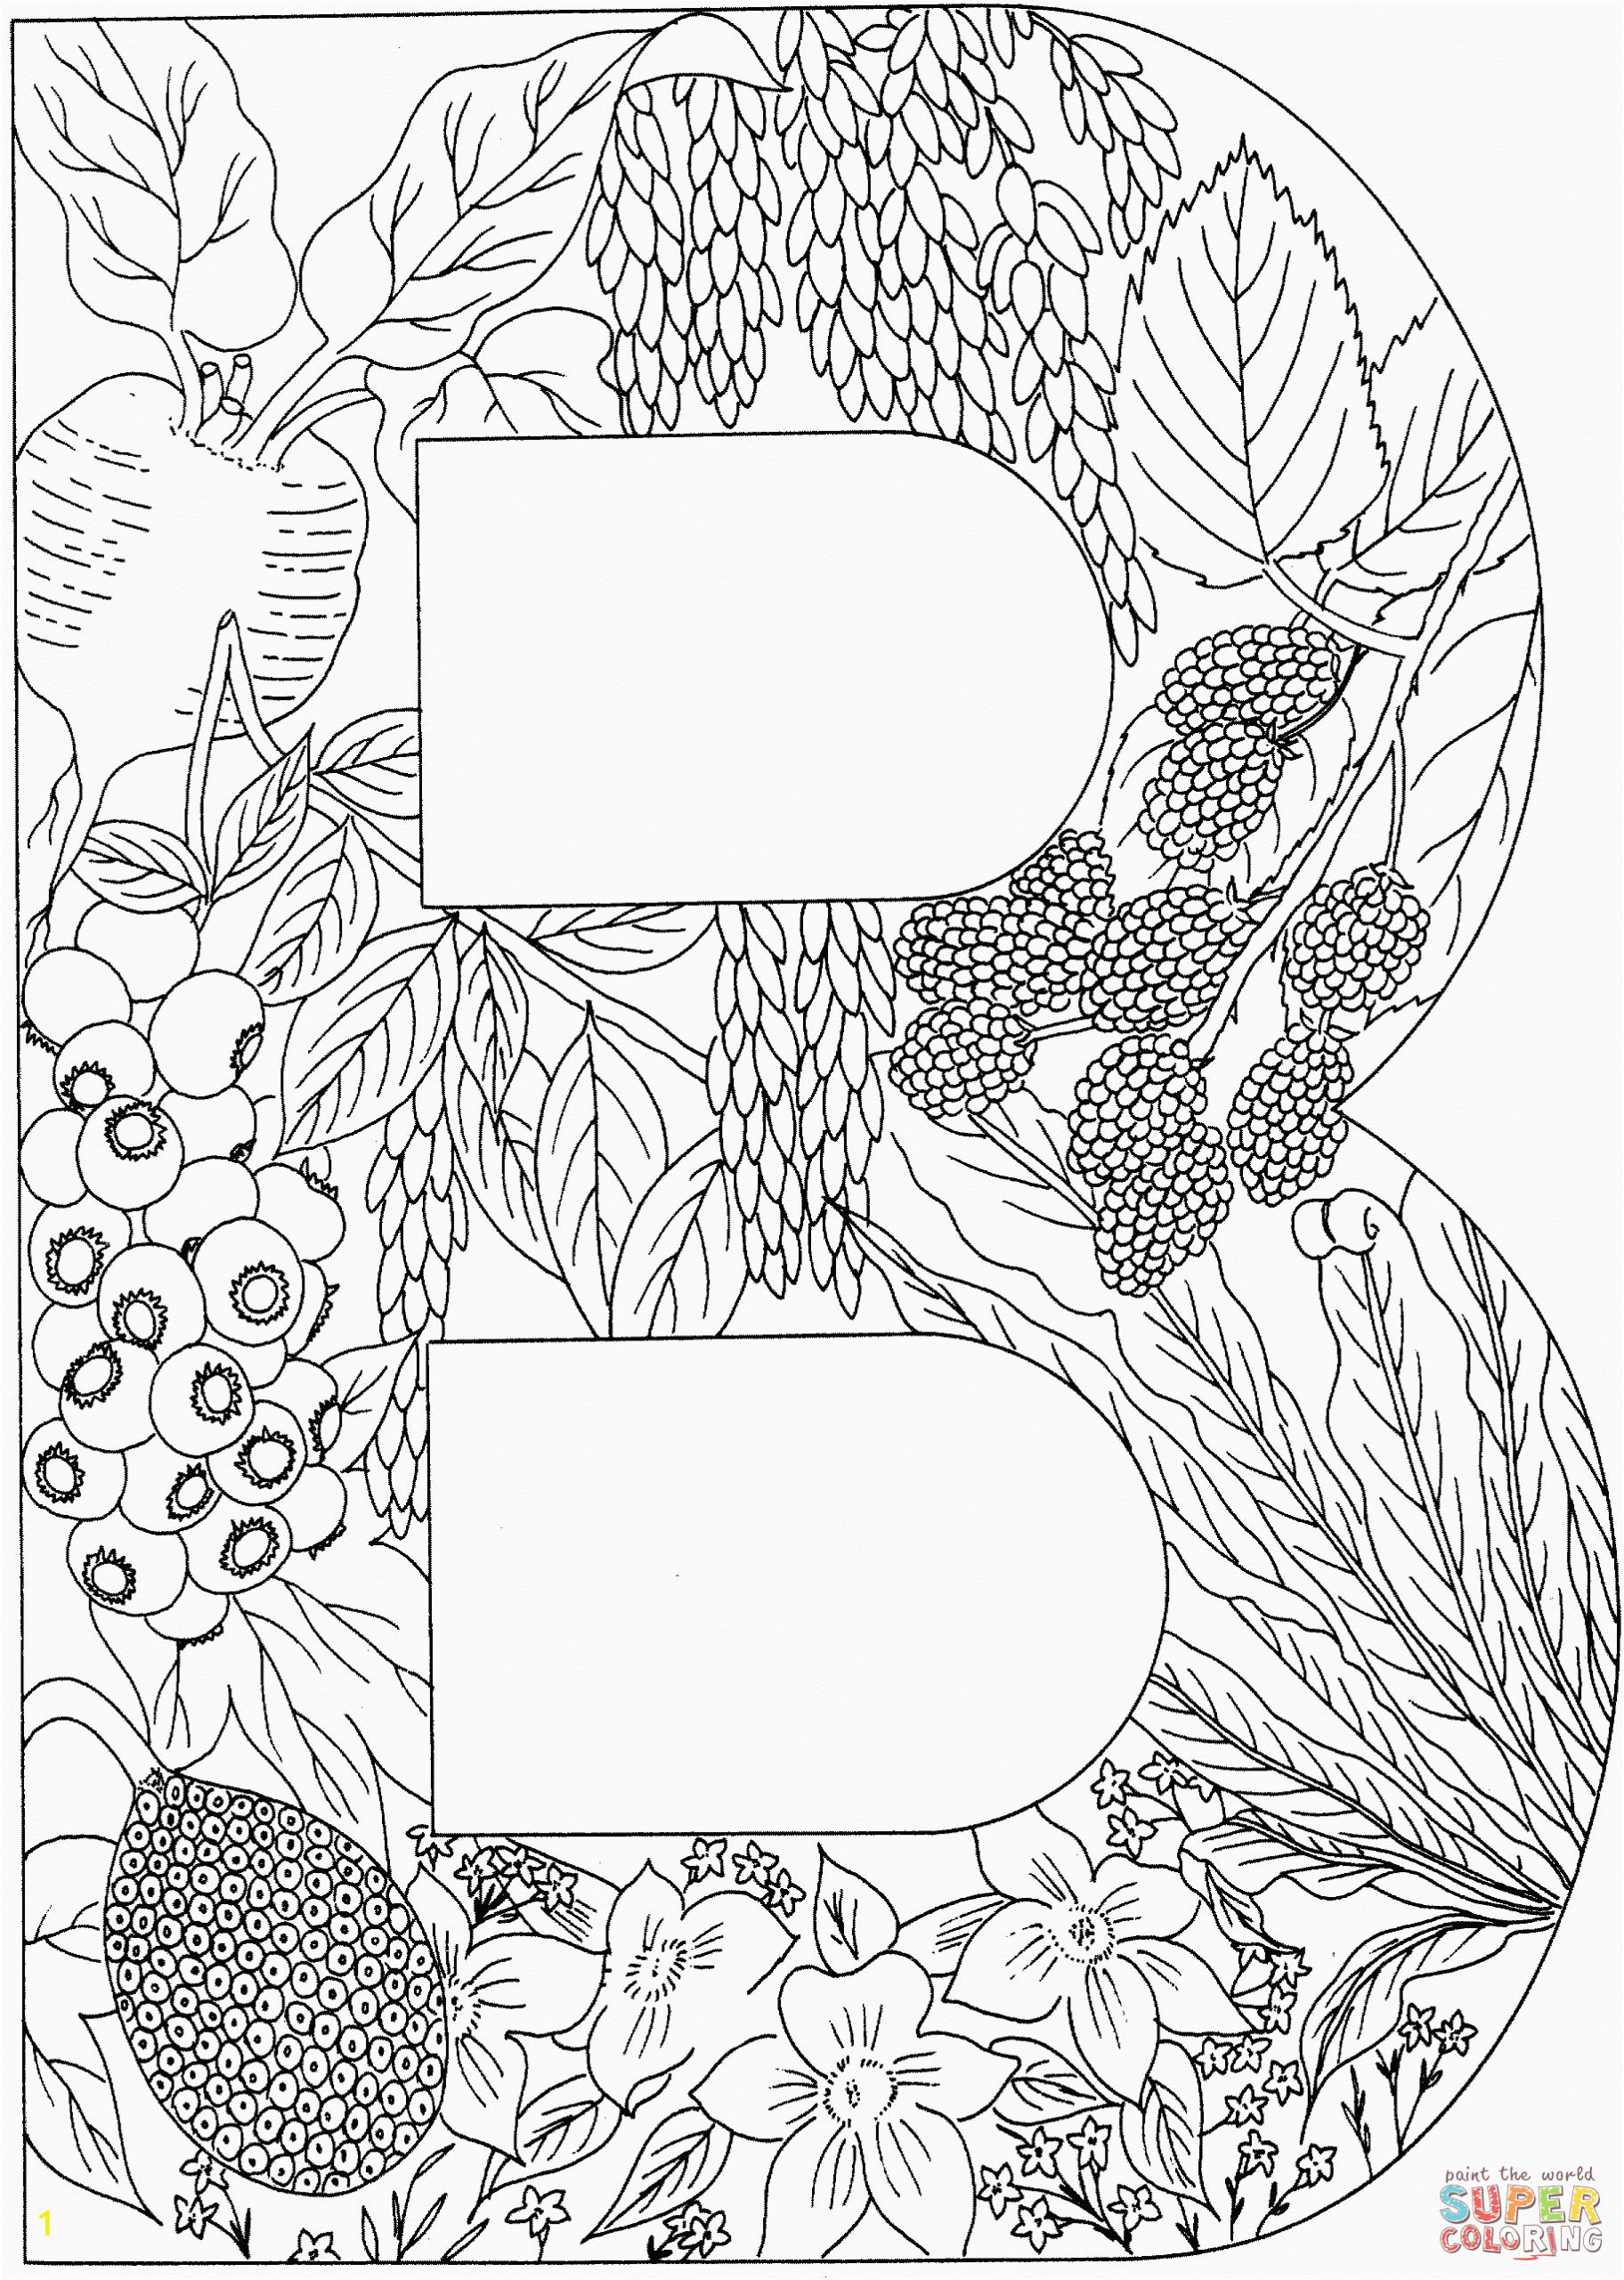 letter m coloring pages for adults letter coloring pages for adults at getcoloringscom for pages adults letter m coloring